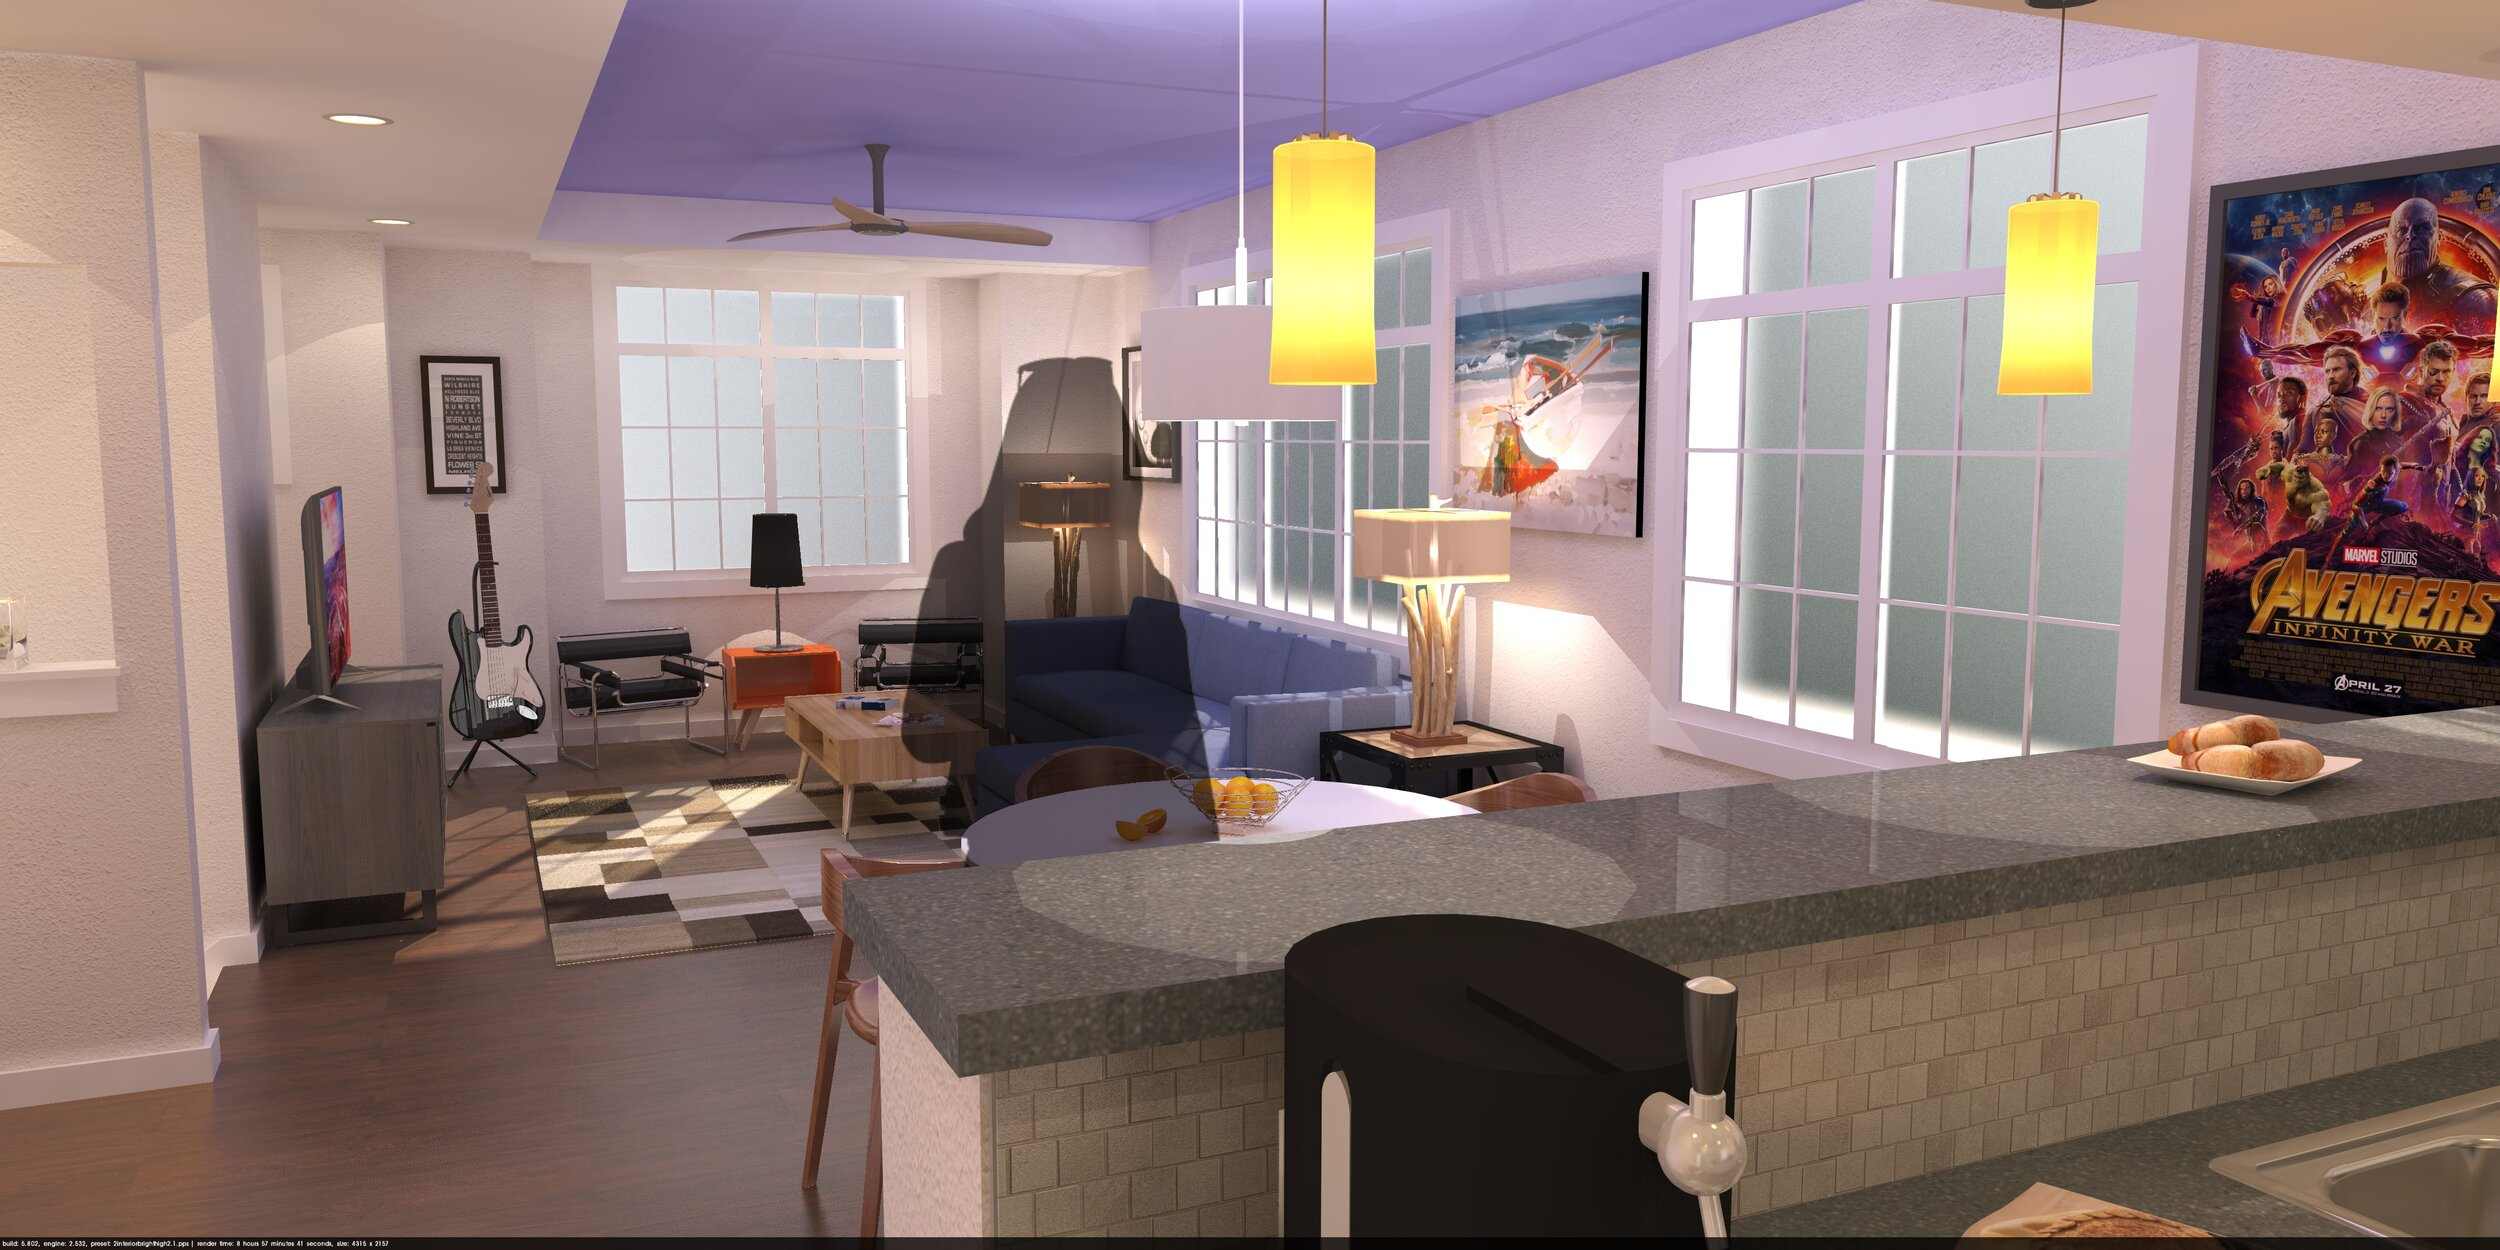 pier st interior-PLAN ONLY_new-with outside 2018-05-19 16271600000.jpg